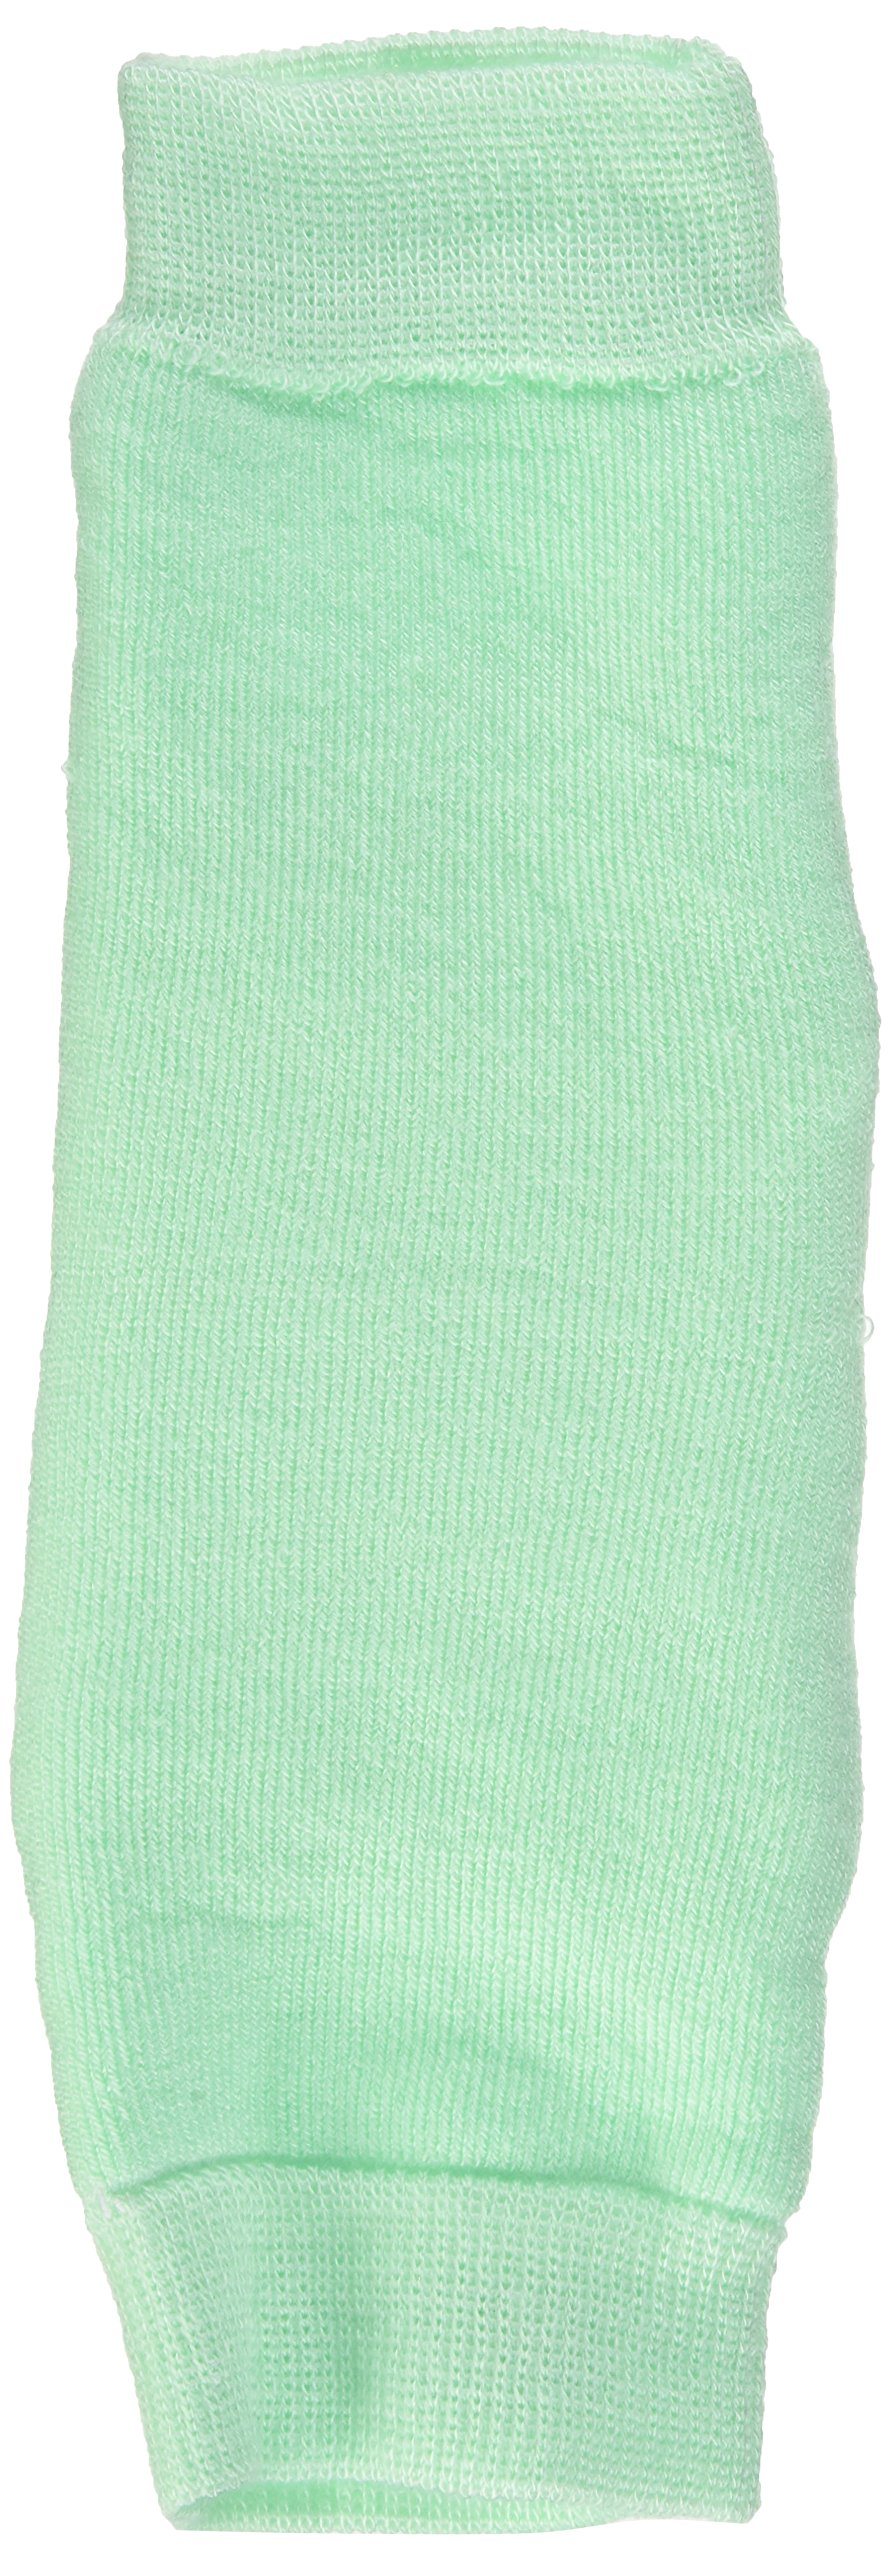 Rolyan Premium Gel Heel/Elbow Protector, X-Large, Green,Sleeve with Gel InsertforSkin Protection and Shock Absorption from Impacts, Removable Gel Pad for Athletic Use in Diffusing Pressure